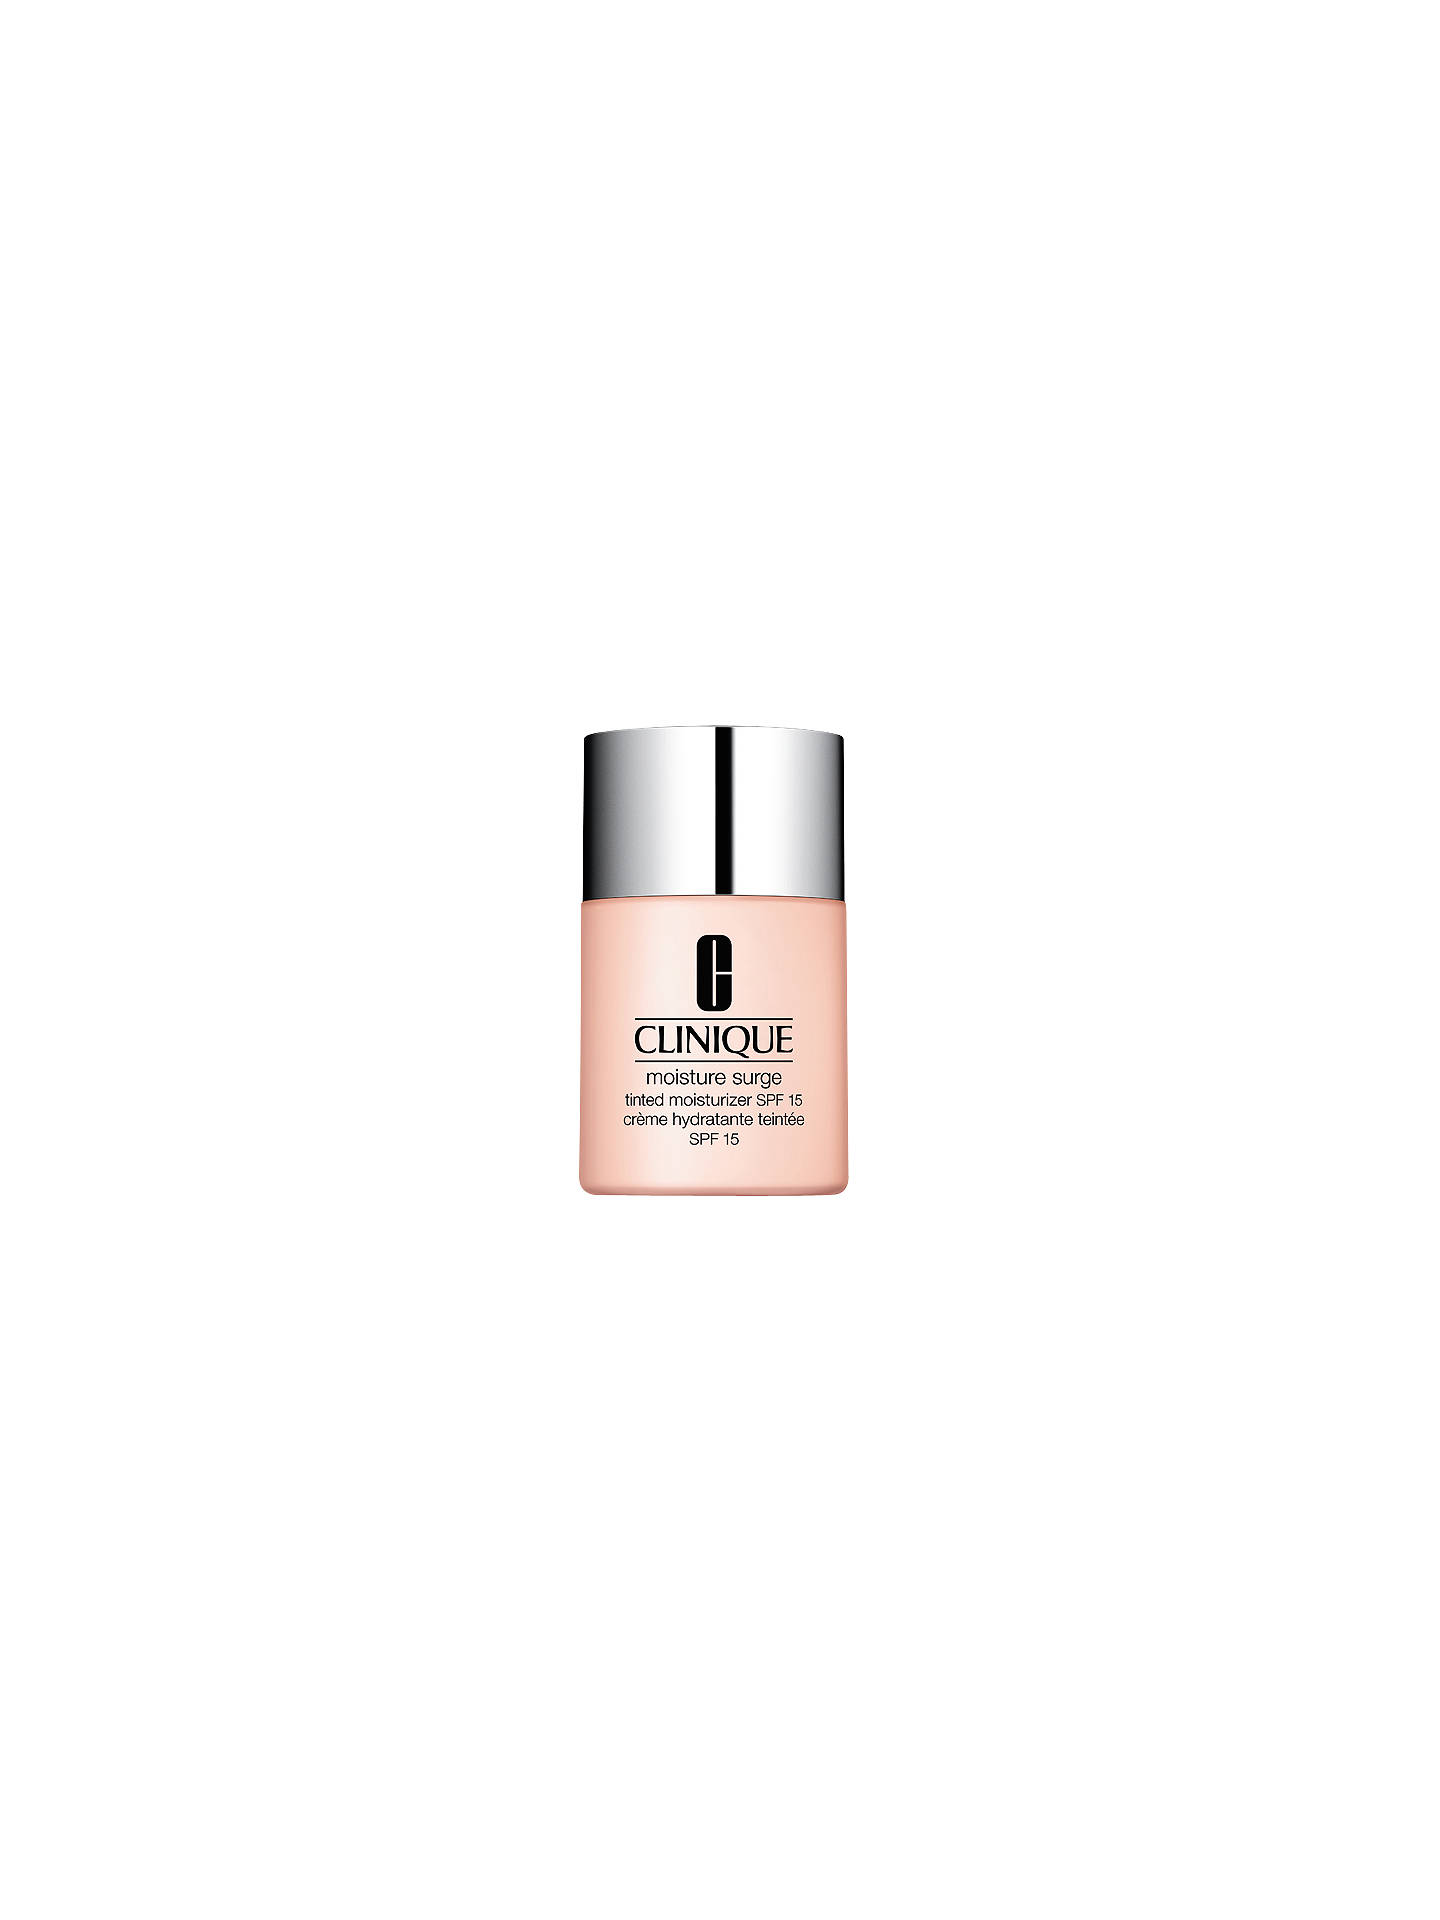 BuyClinique Moisture Surge Tinted Moisturizer SPF15, 30ml, Shade 1 Online at johnlewis.com